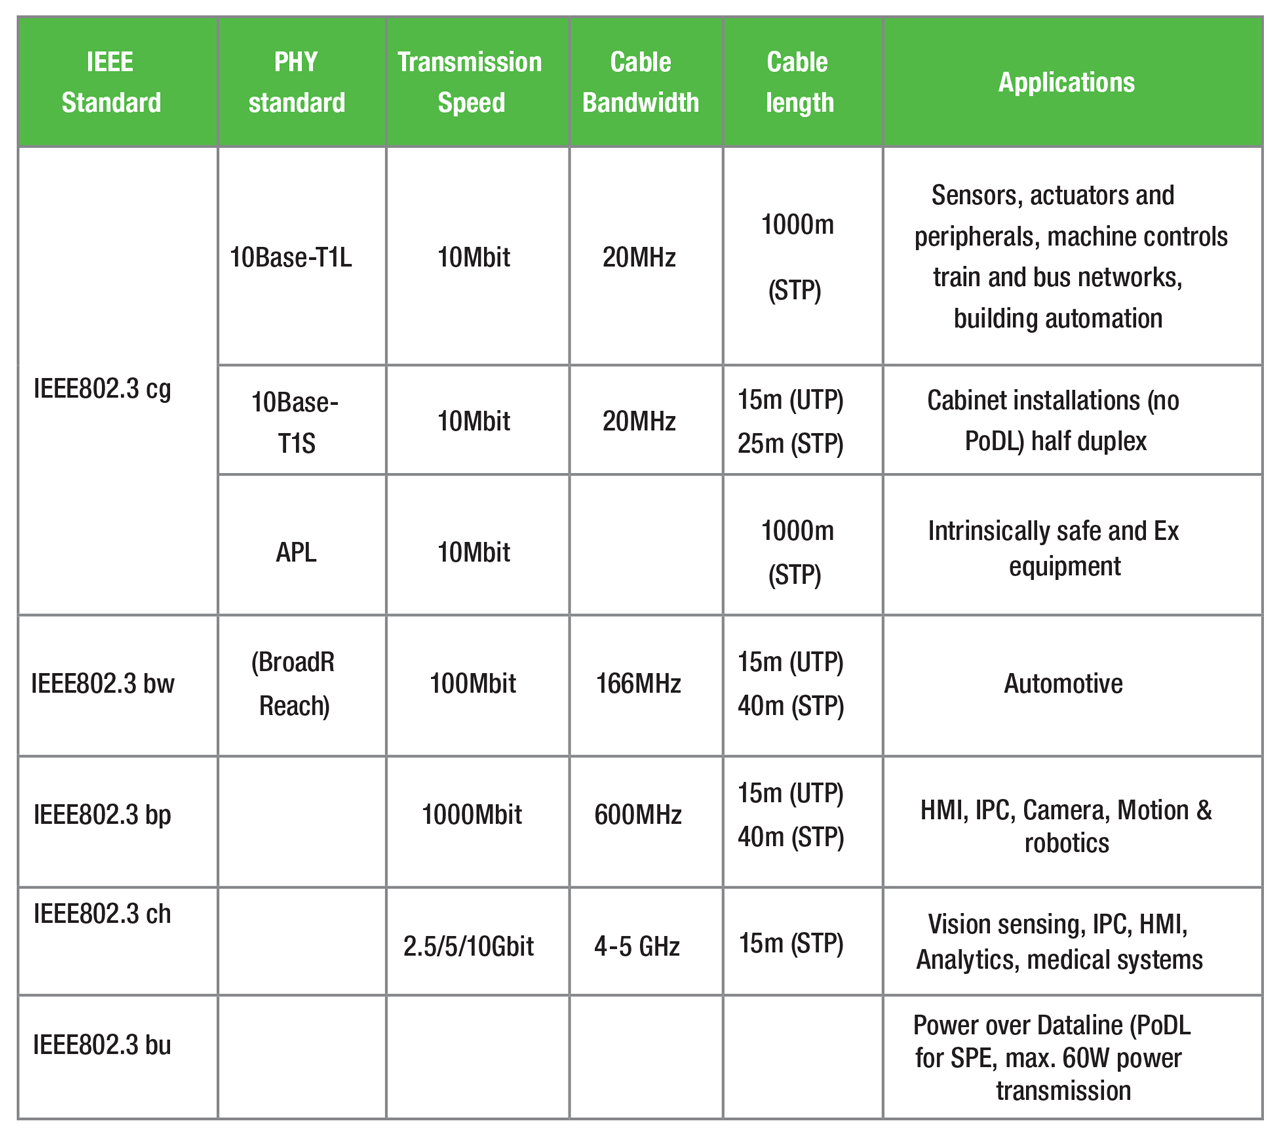 Overview of different SPE-related standards.